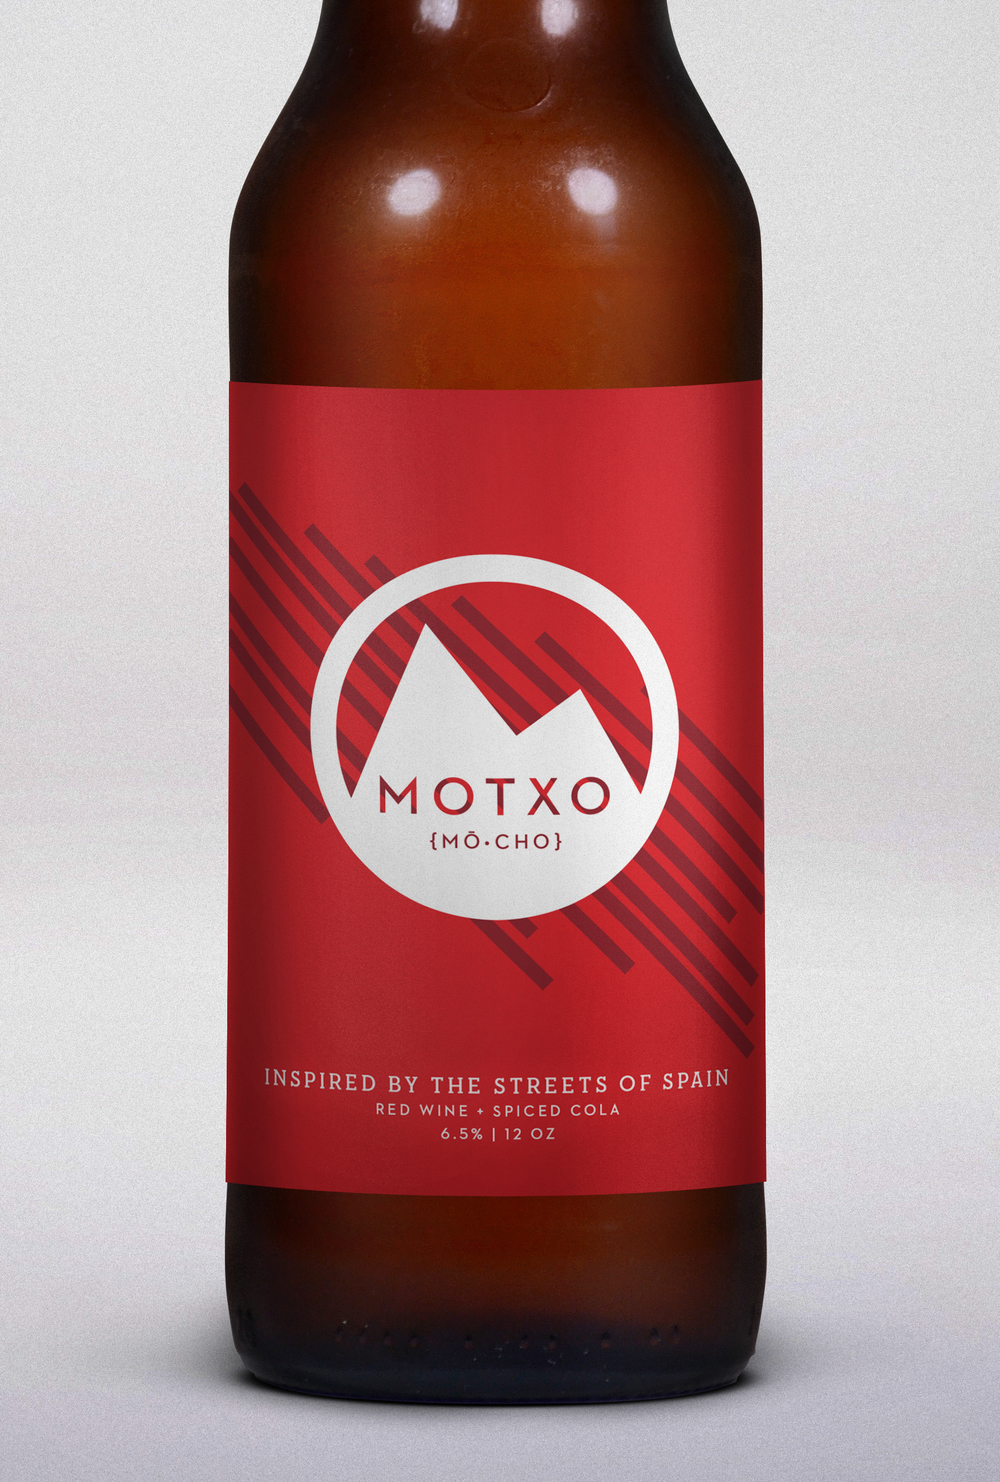 Motxo Bottle Mockup on white-2.jpg